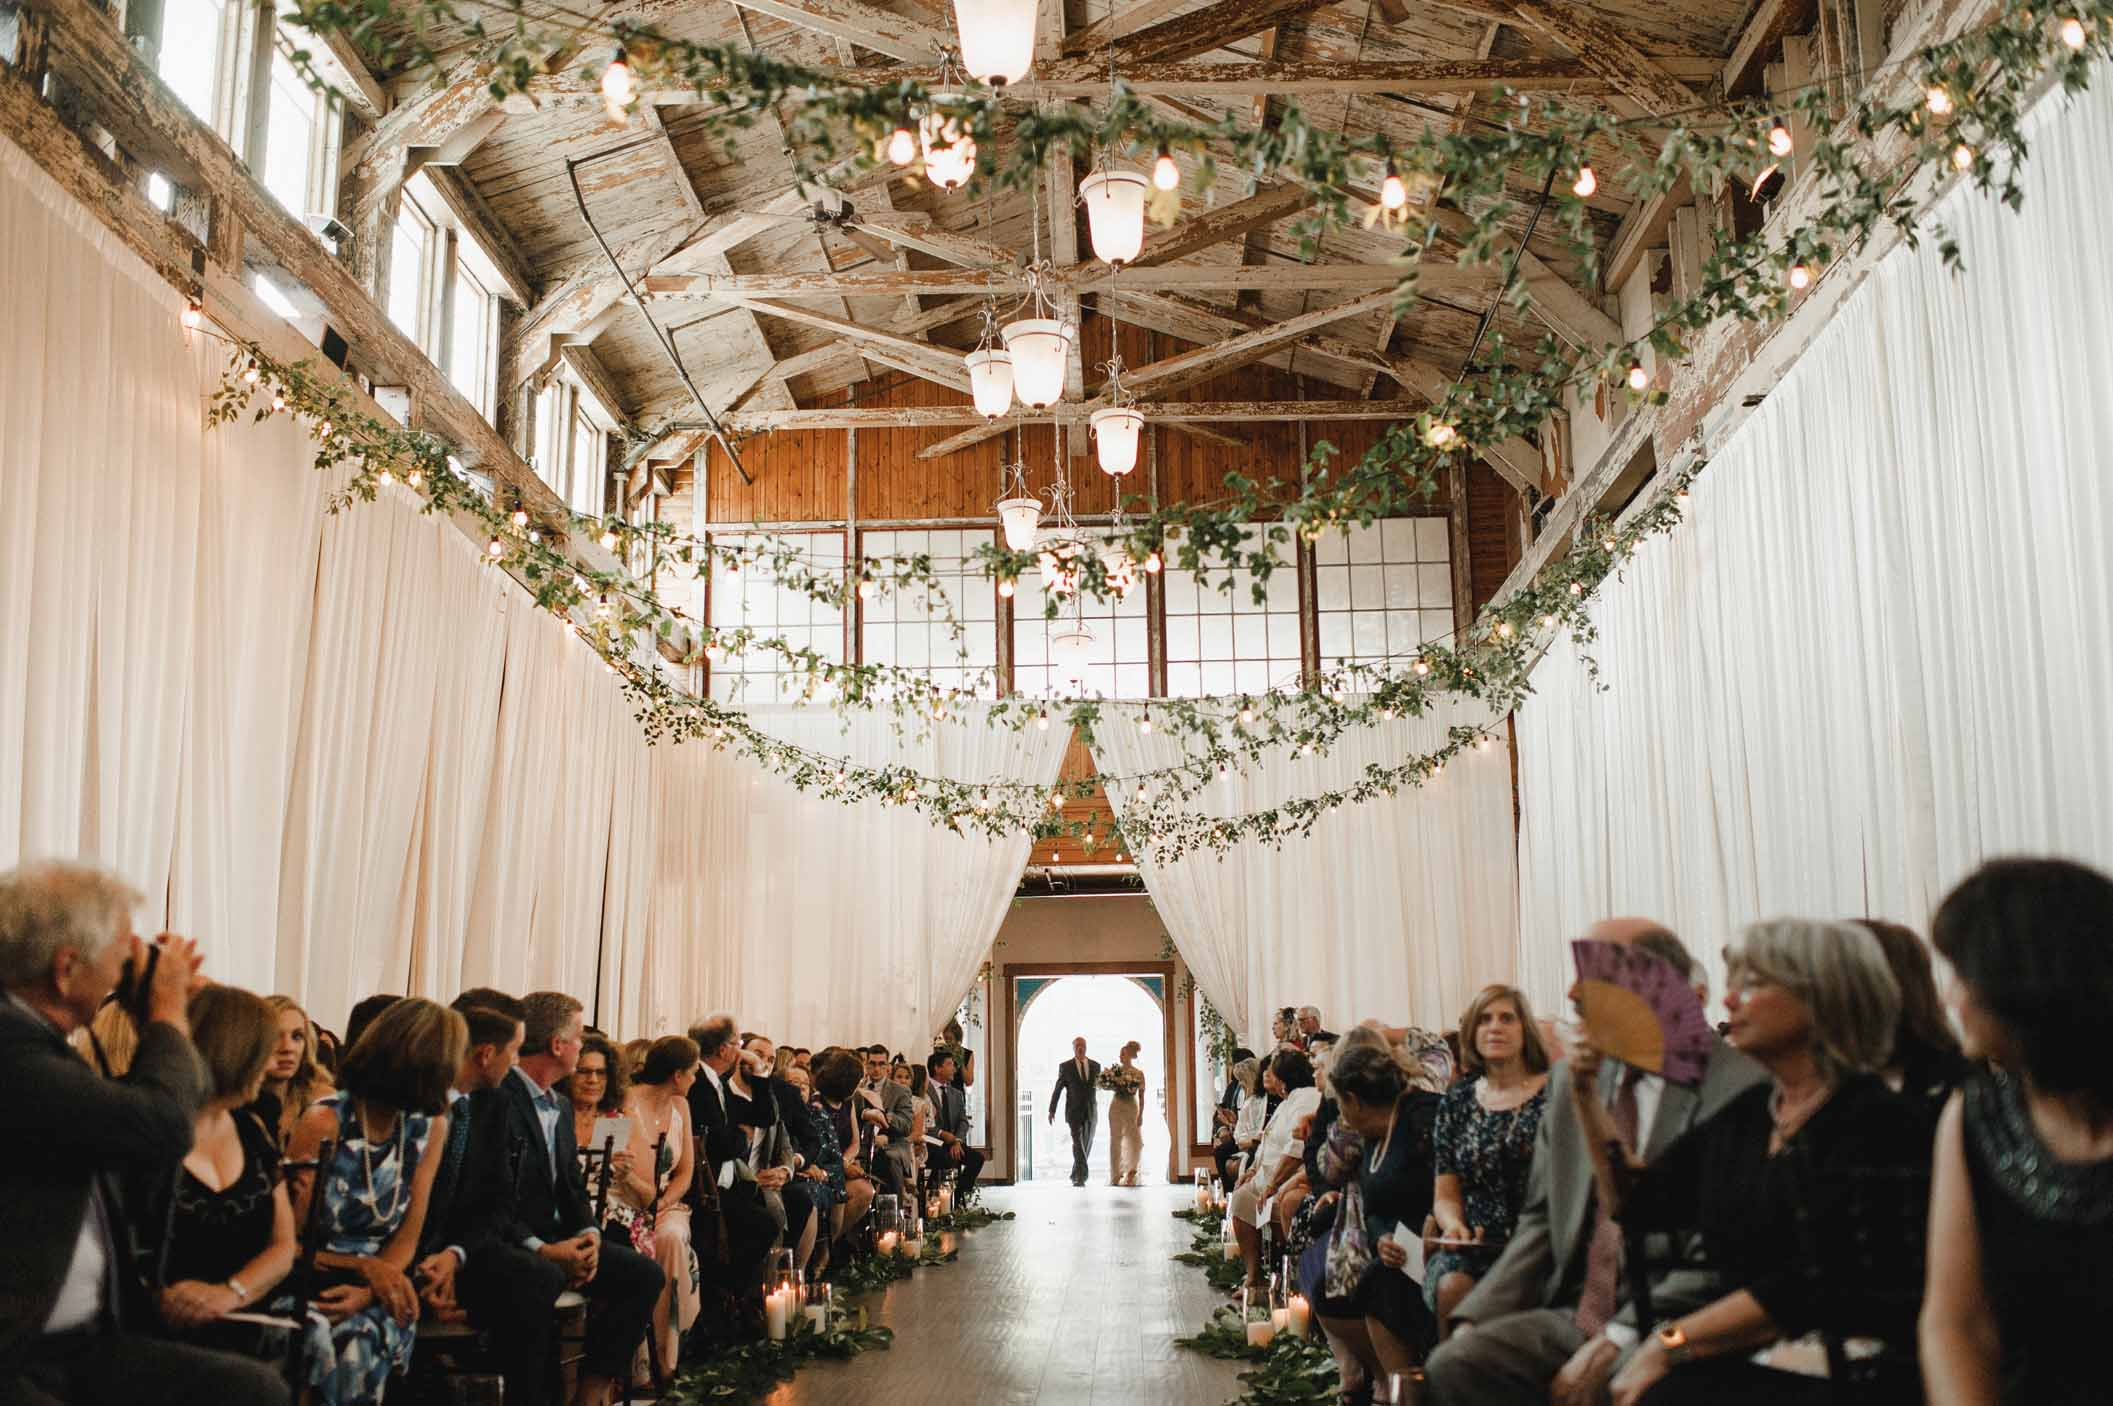 Wedding ceremony aisle with greenery overhead, and draping along sides - Flora Nova Design Seattle